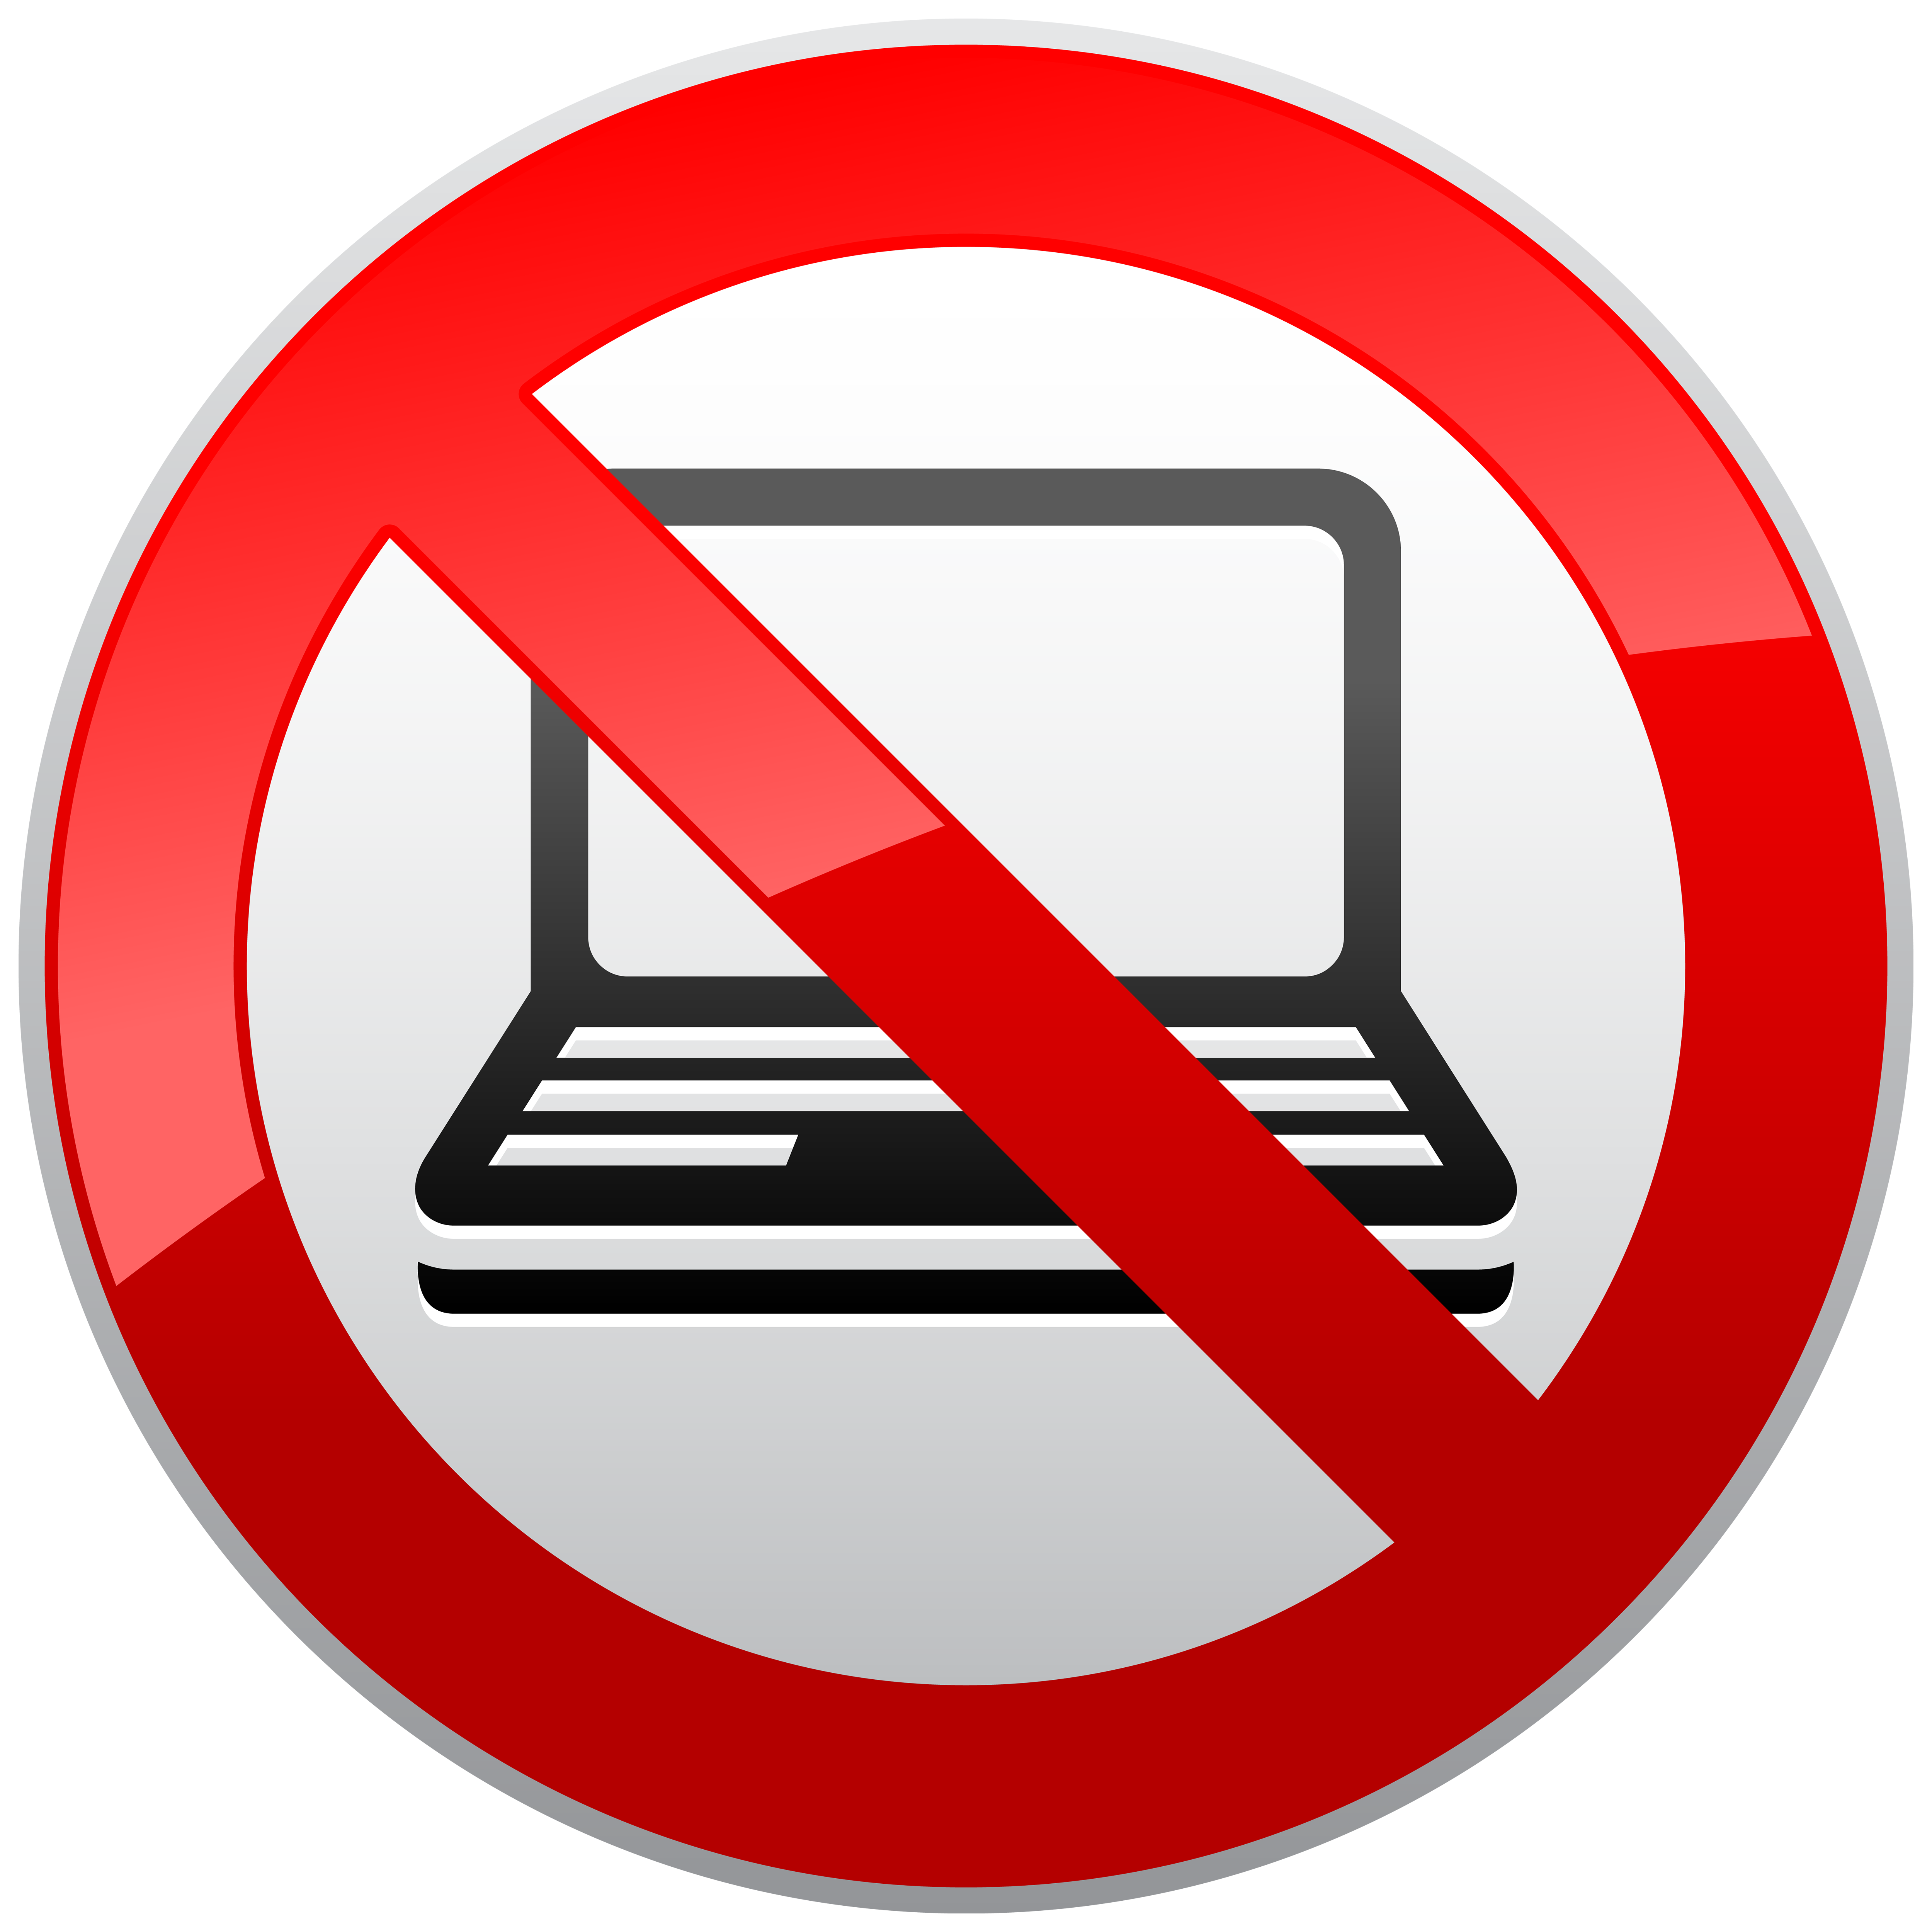 Circle clipart computer. No laptop prohibition sign